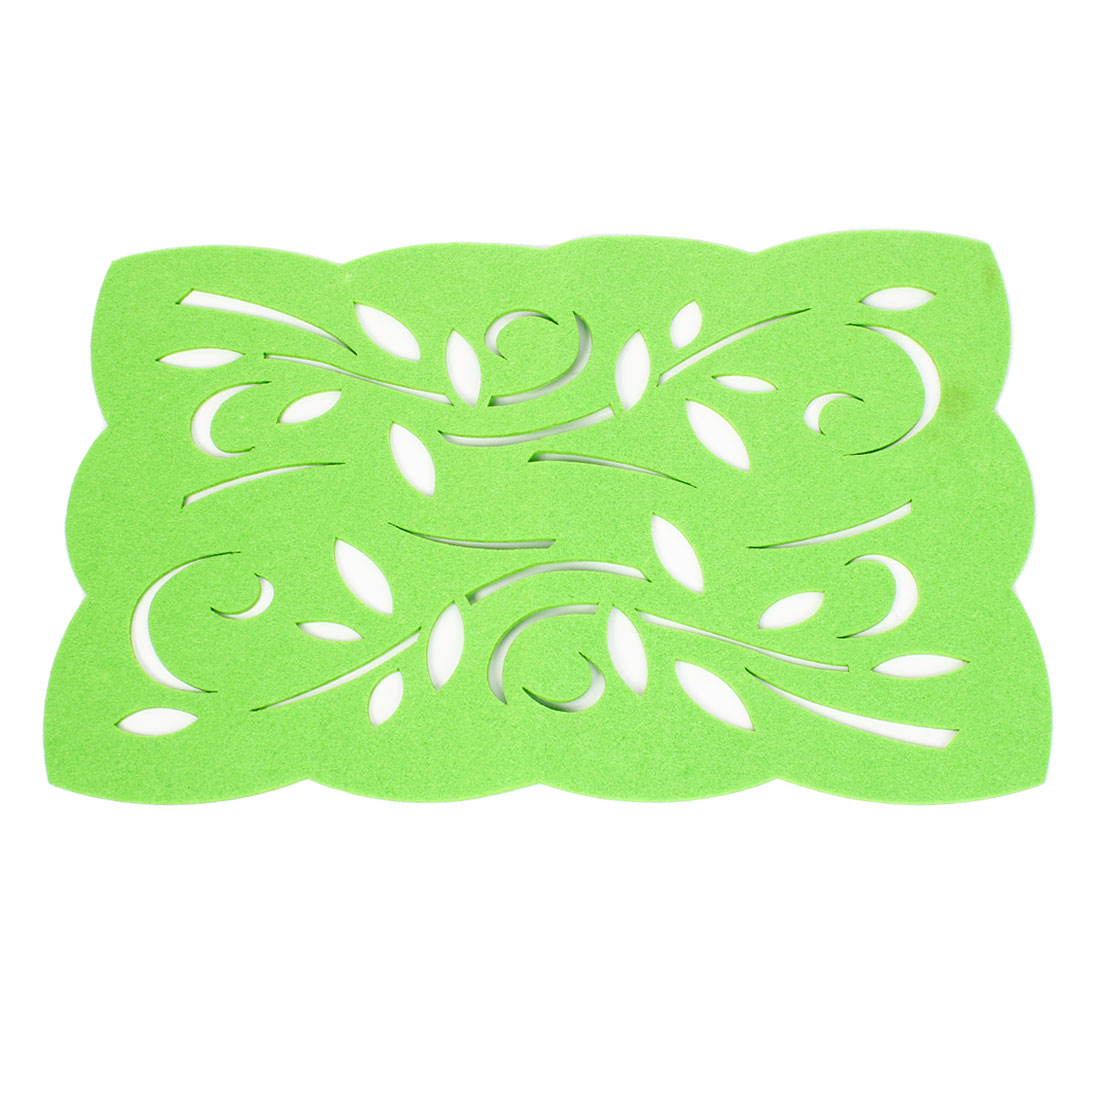 Green Felt Hollow Out Flower Table Mat Insulating Pad Placemat